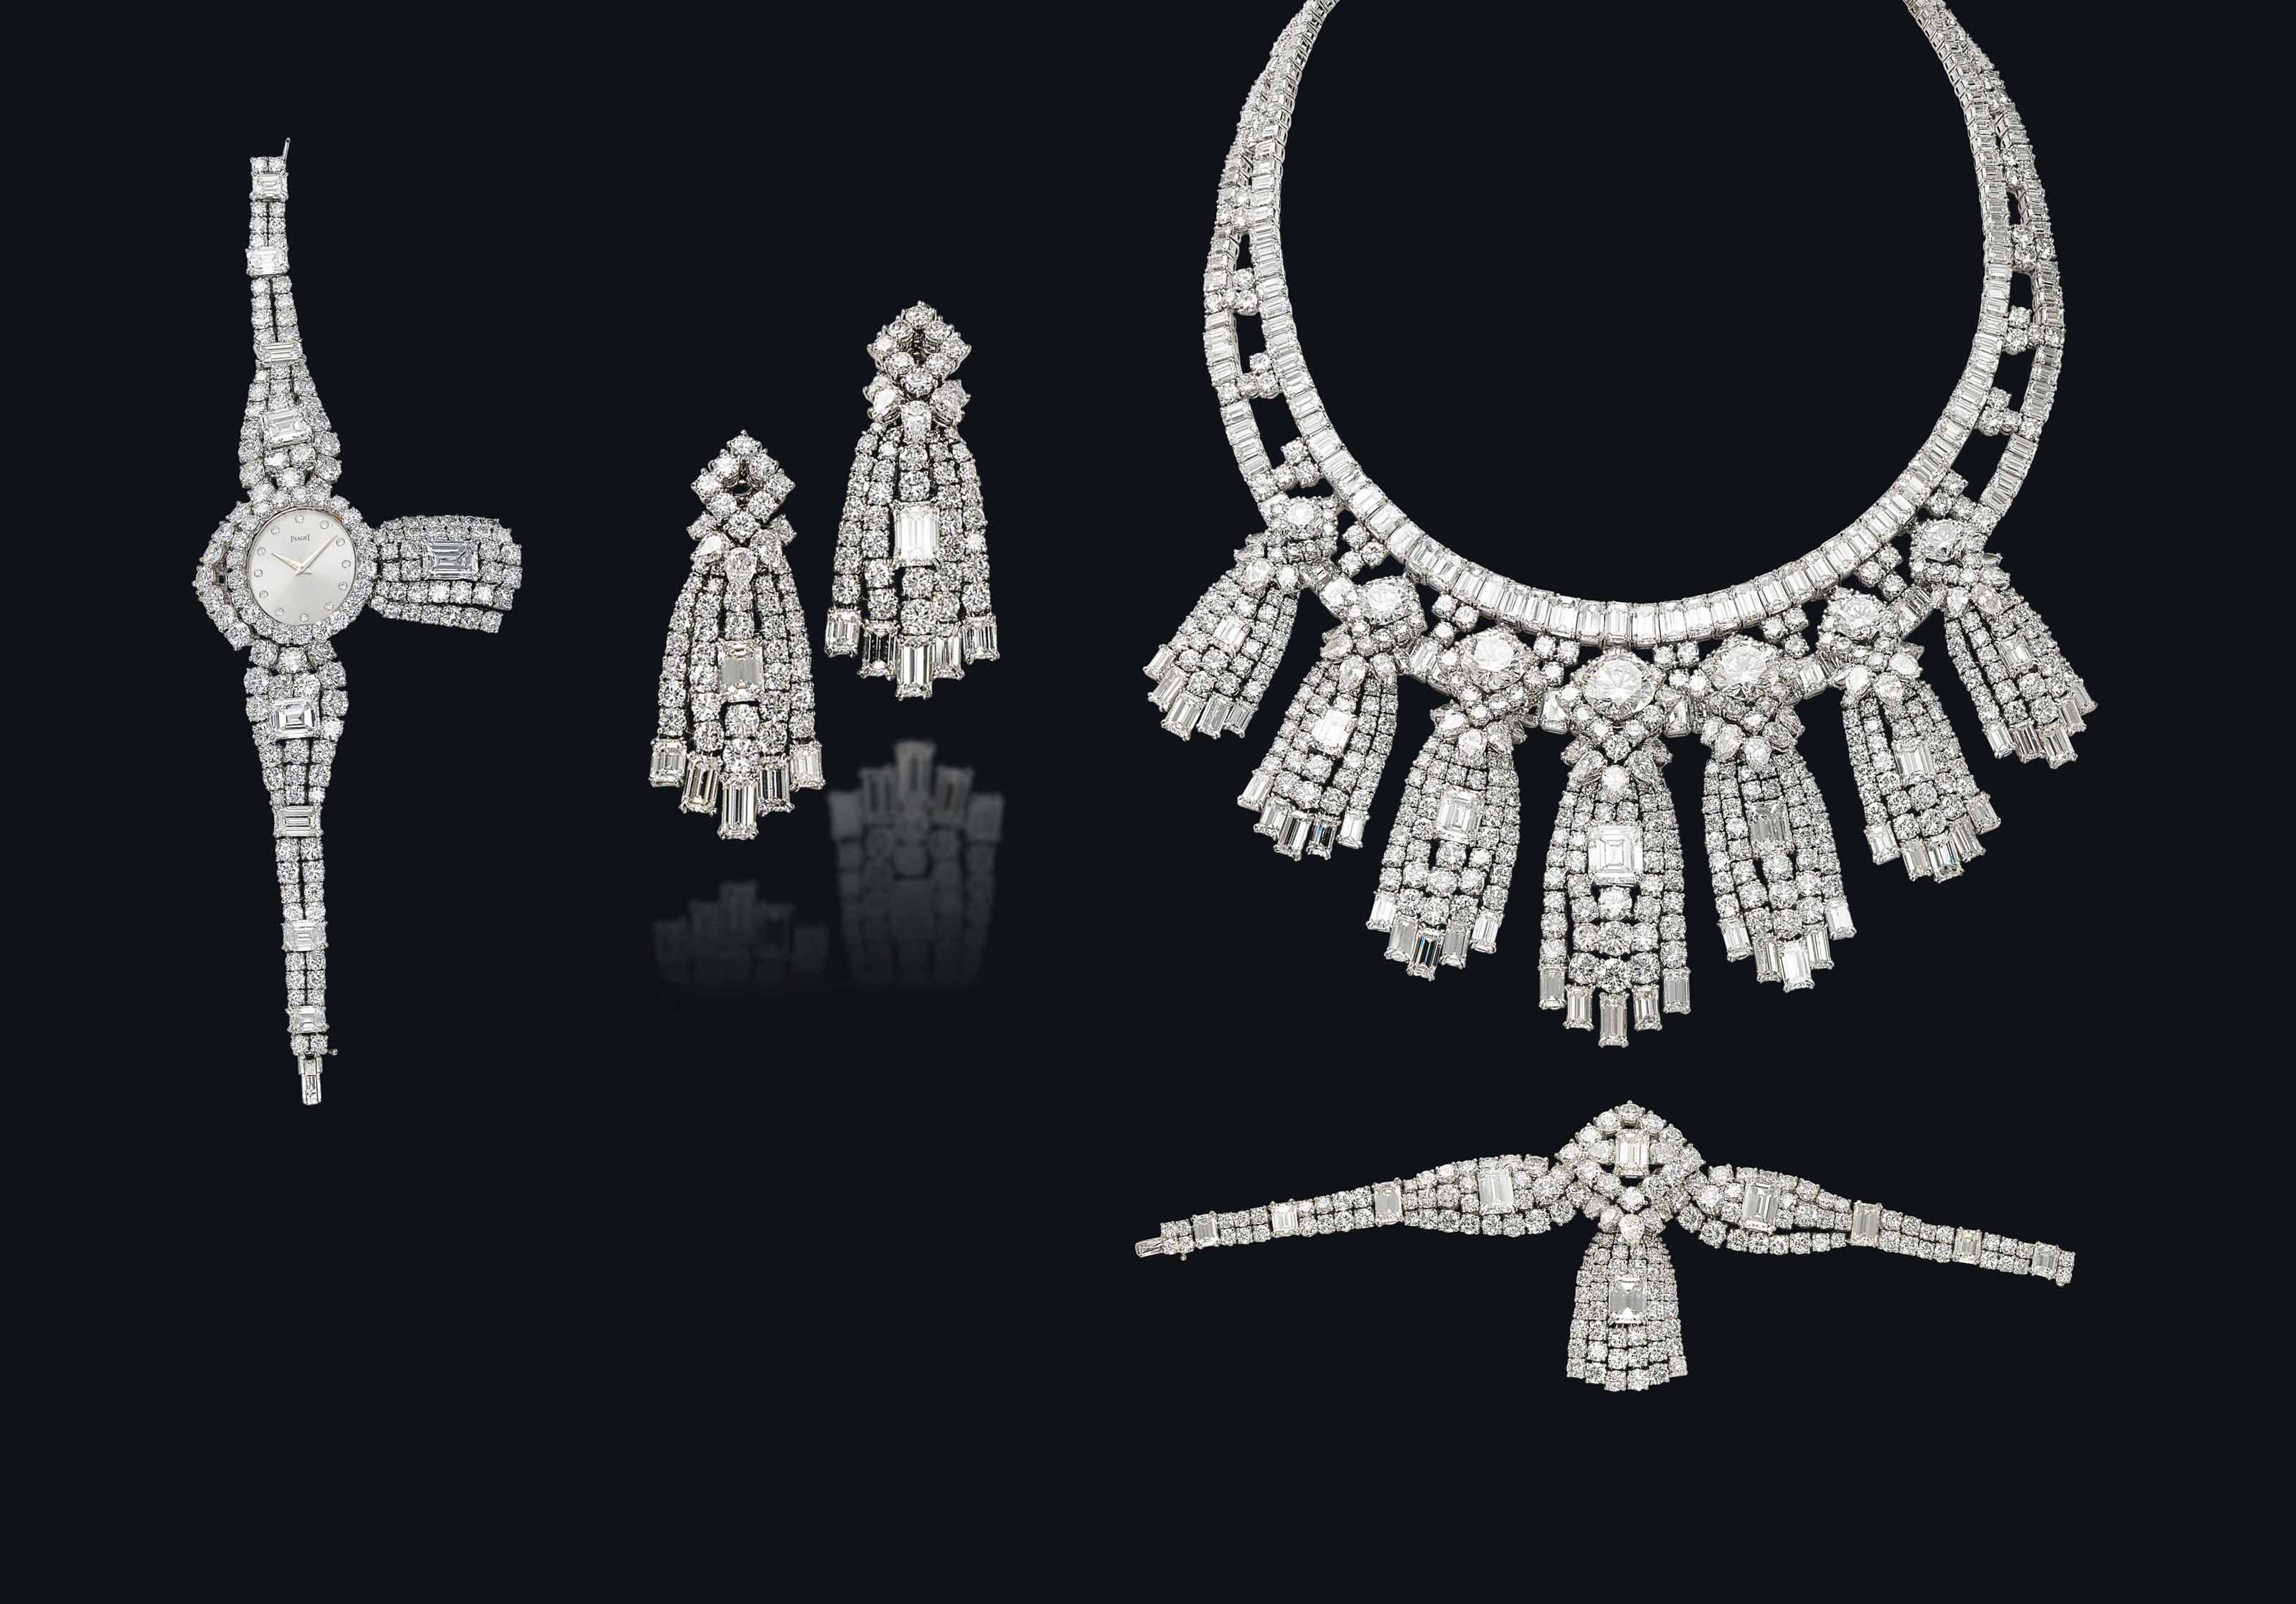 A SUITE OF DIAMOND JEWELLERY, BY MOUAWAD